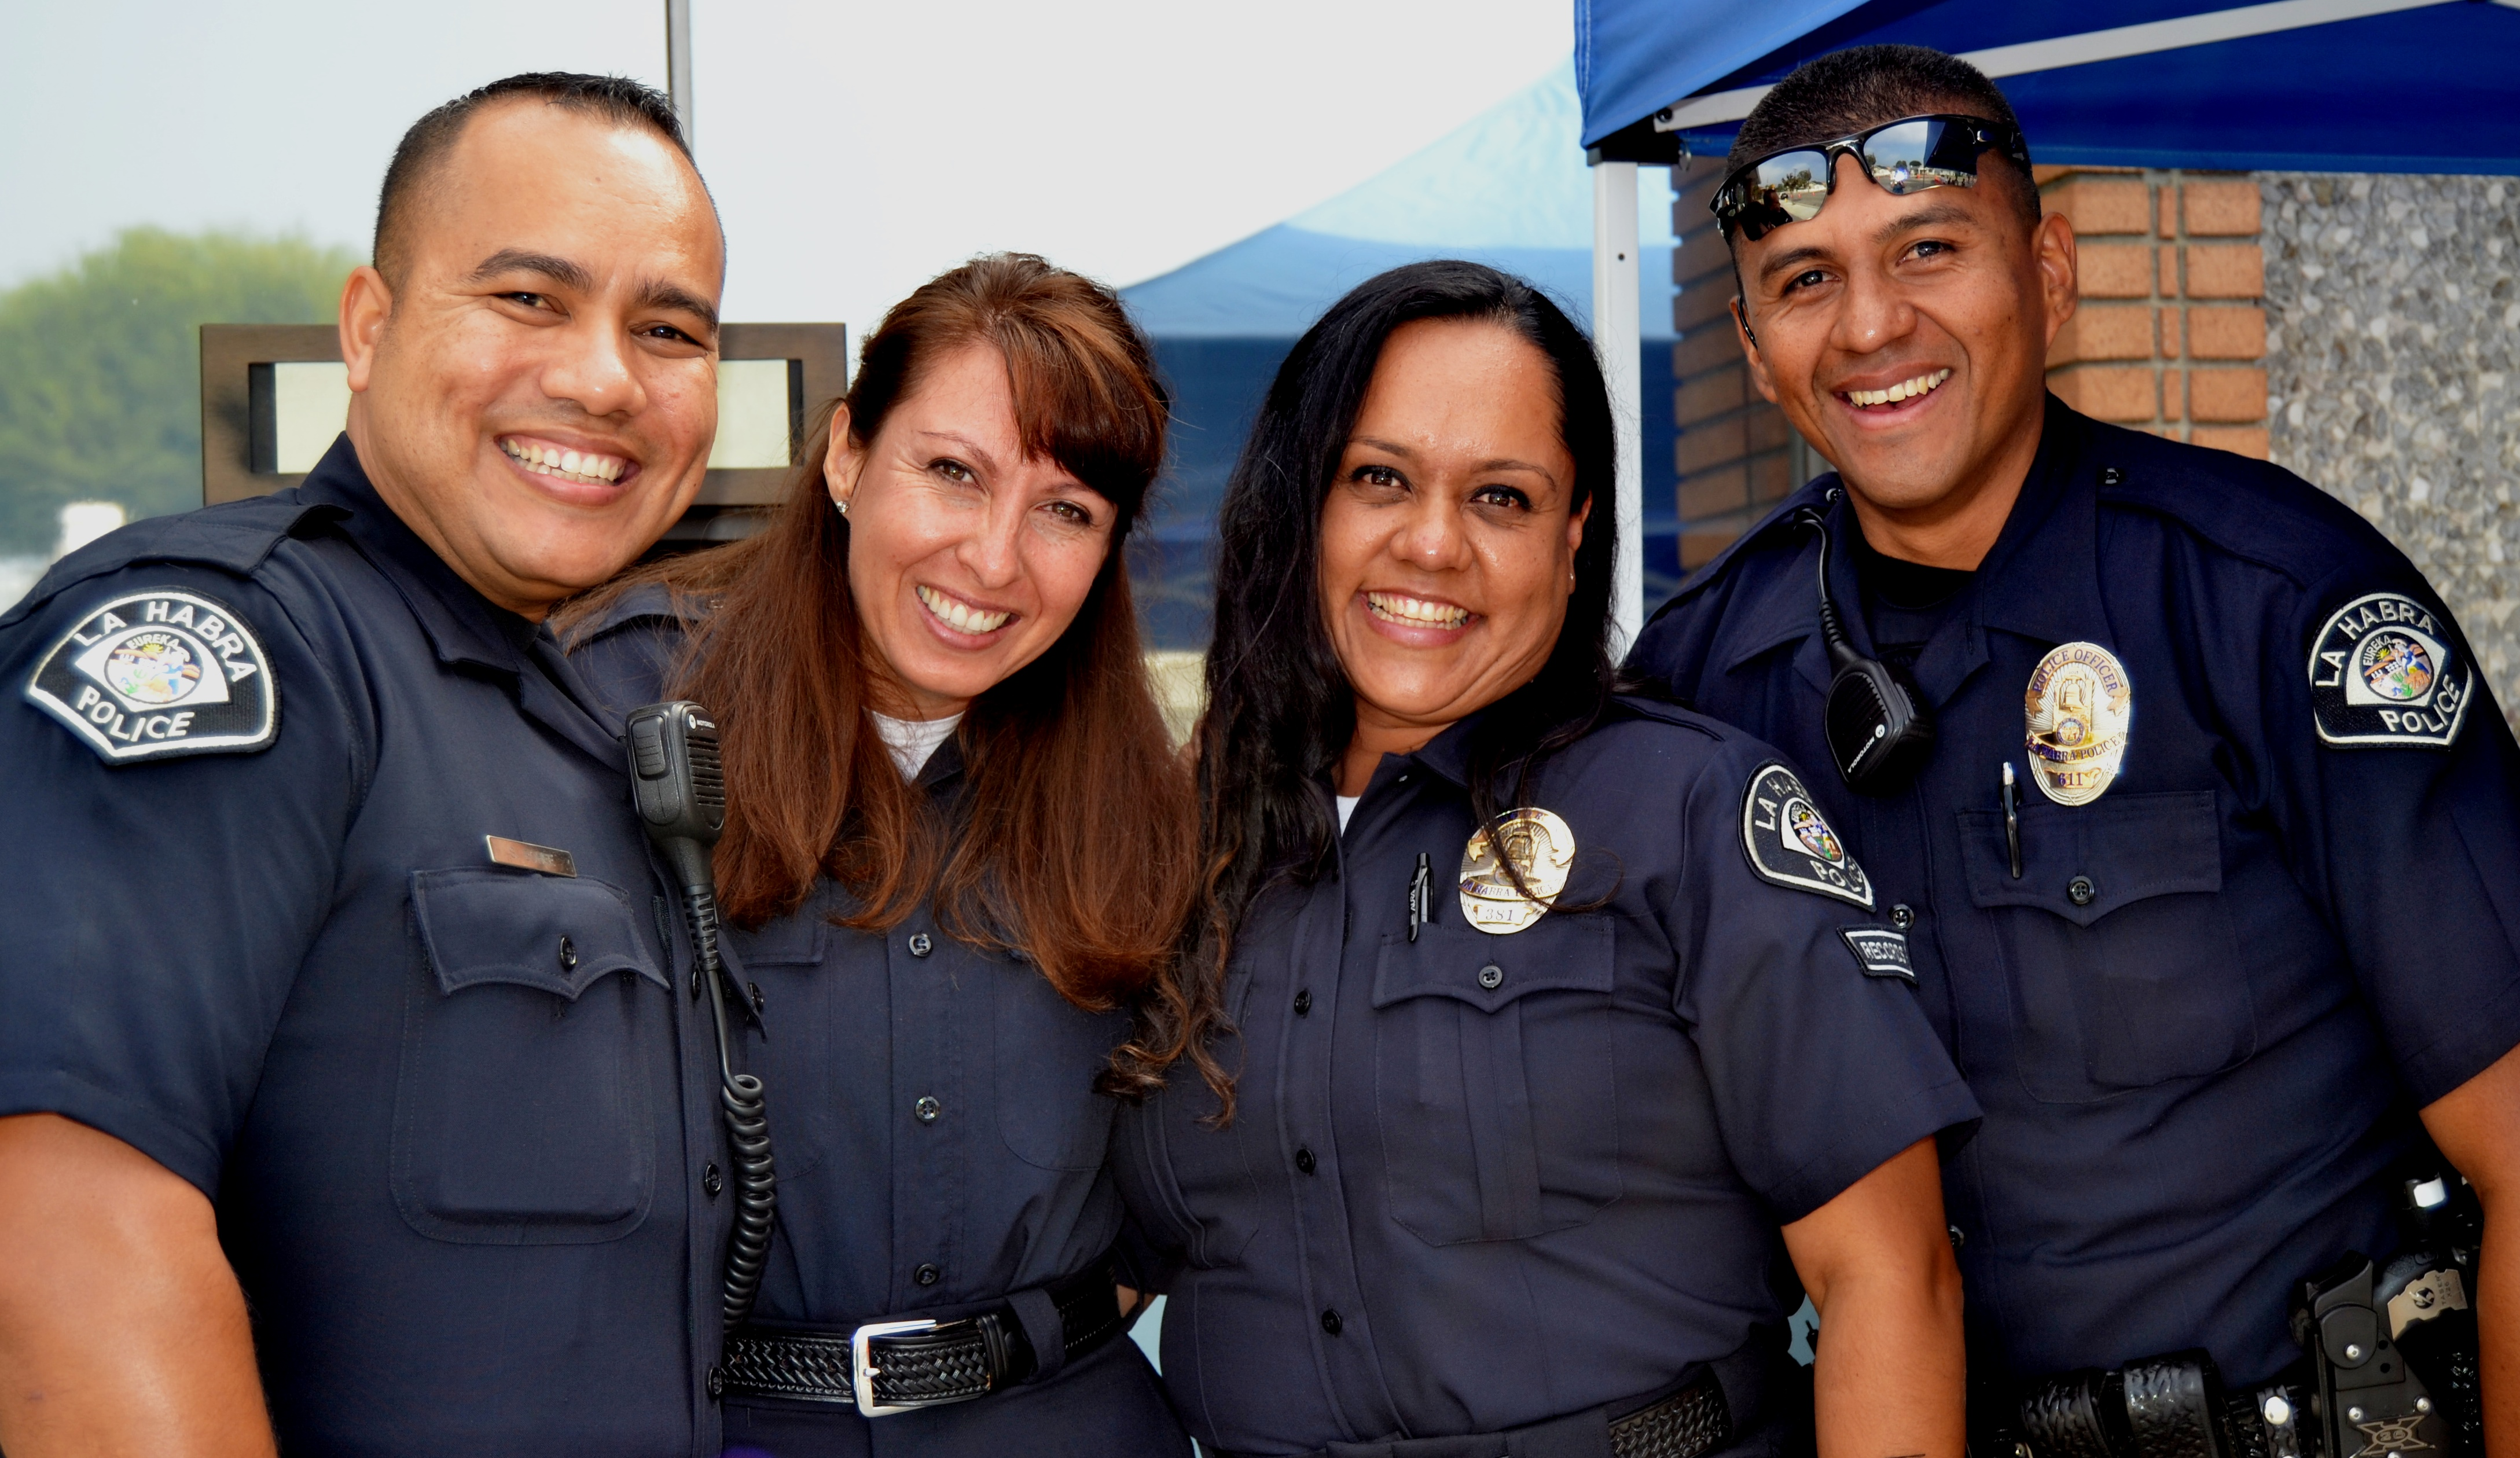 PD PERSONNEL